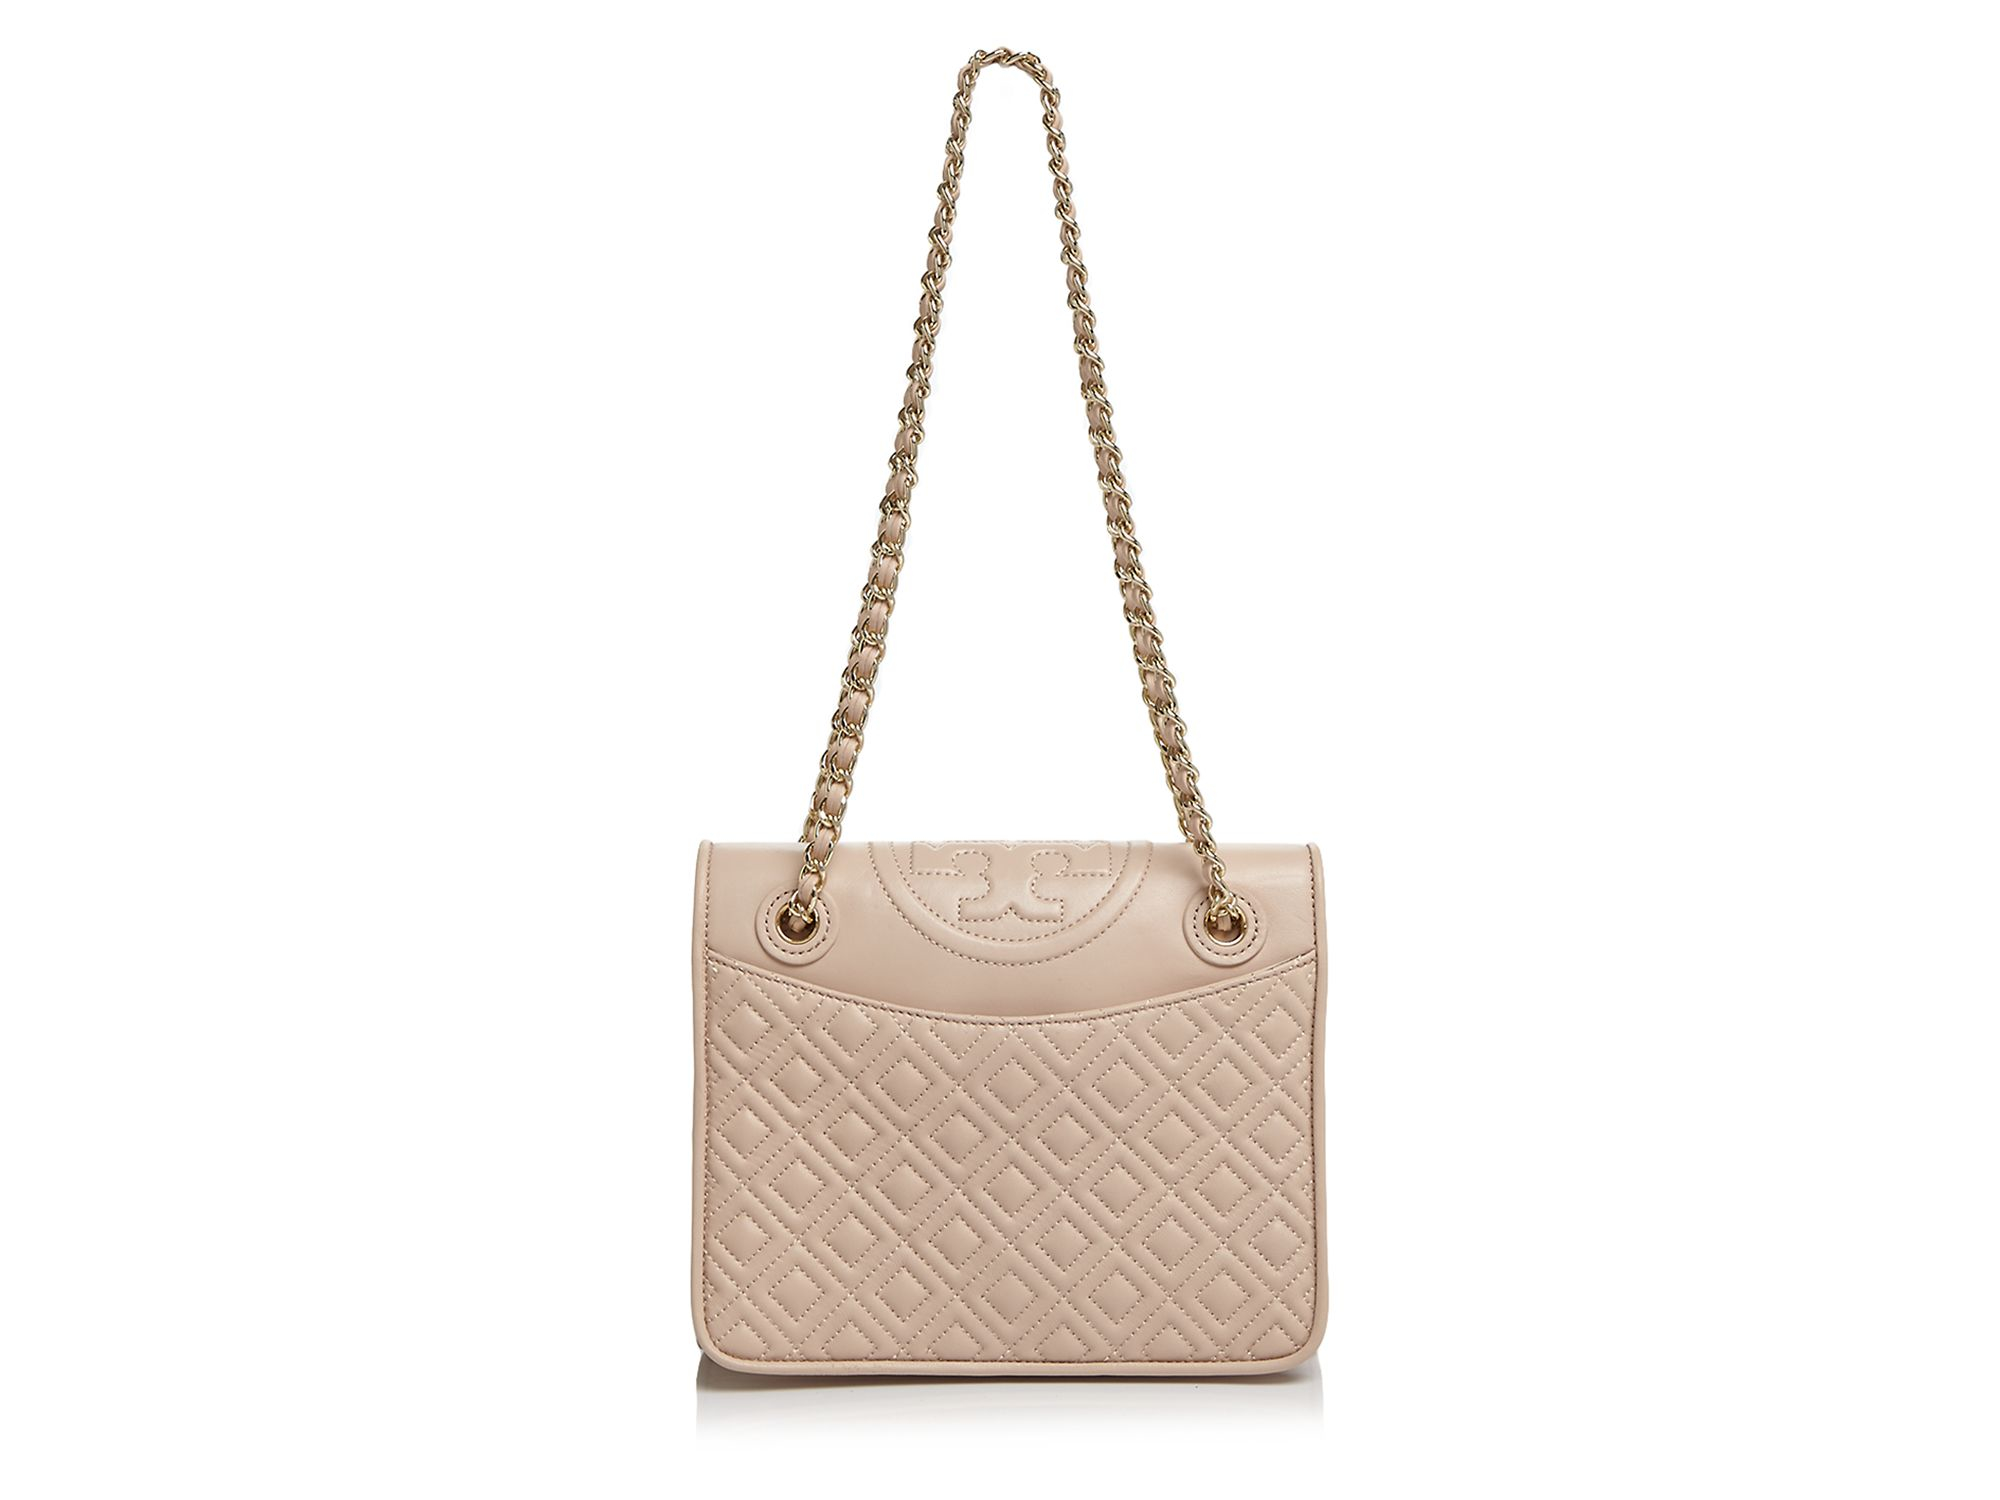 d6c465af8bf Tory Burch Fleming Medium Shoulder Bag in Natural - Lyst